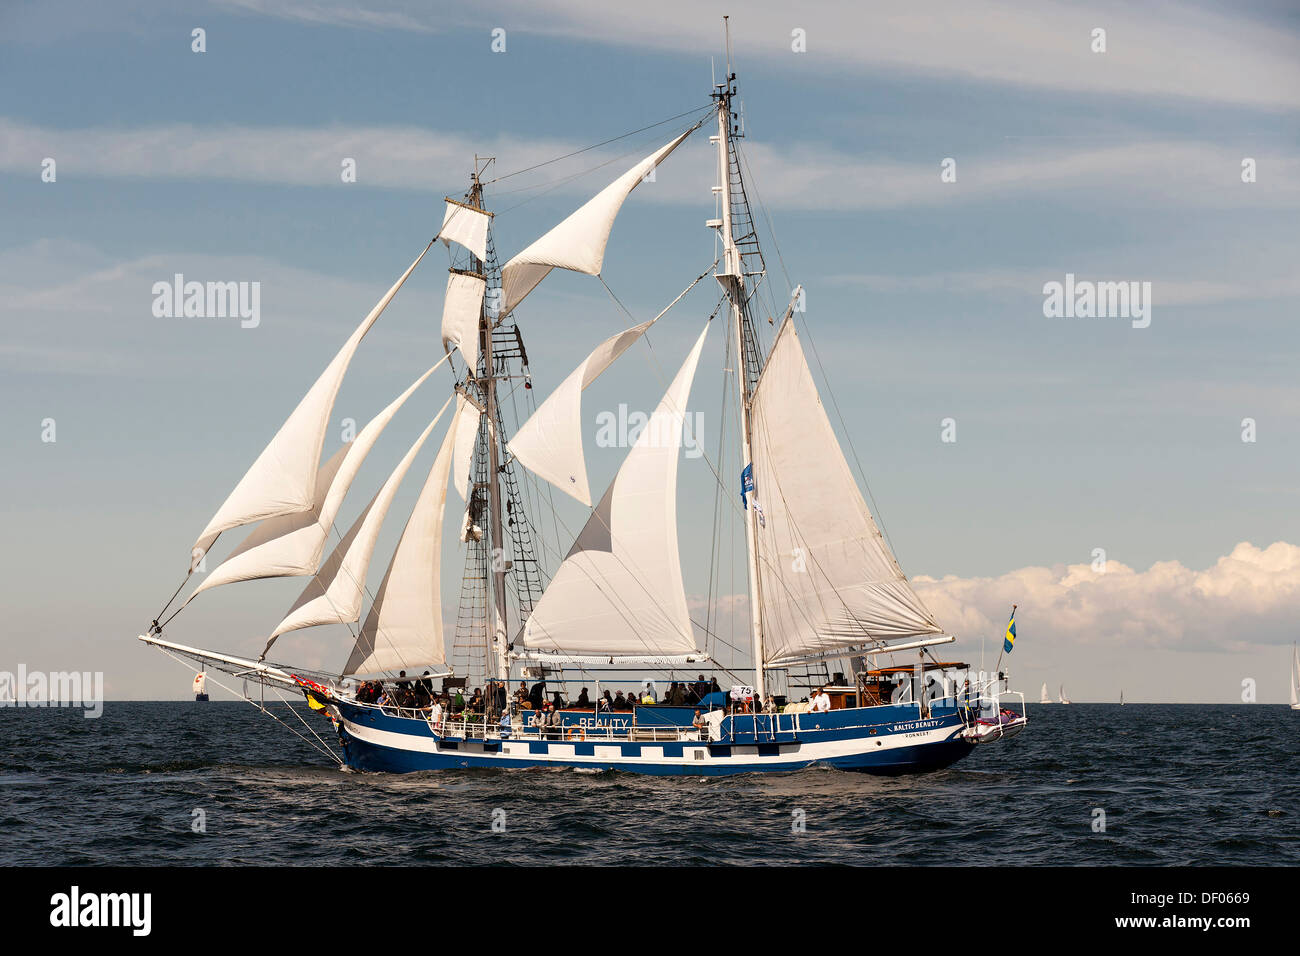 Baltic Beauty, a two-masted brigantine sailing ship during Hanse Sail 2012, Warnemuende, Mecklenburg-Western Pomerania - Stock Image